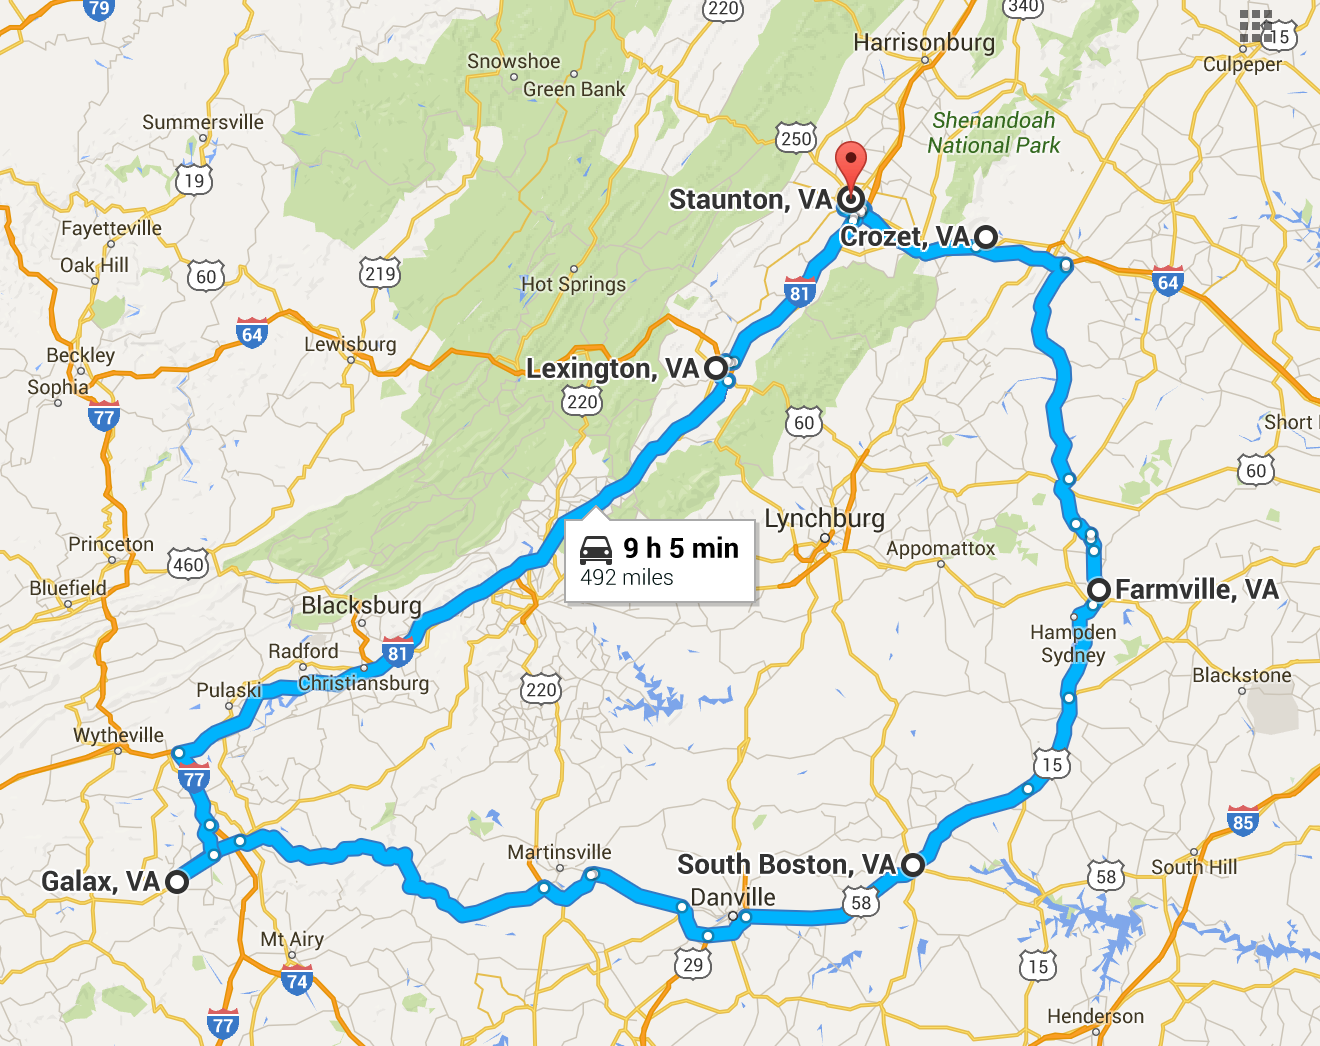 A Picturesque Road Trip Through 6 Small Towns In Virginia